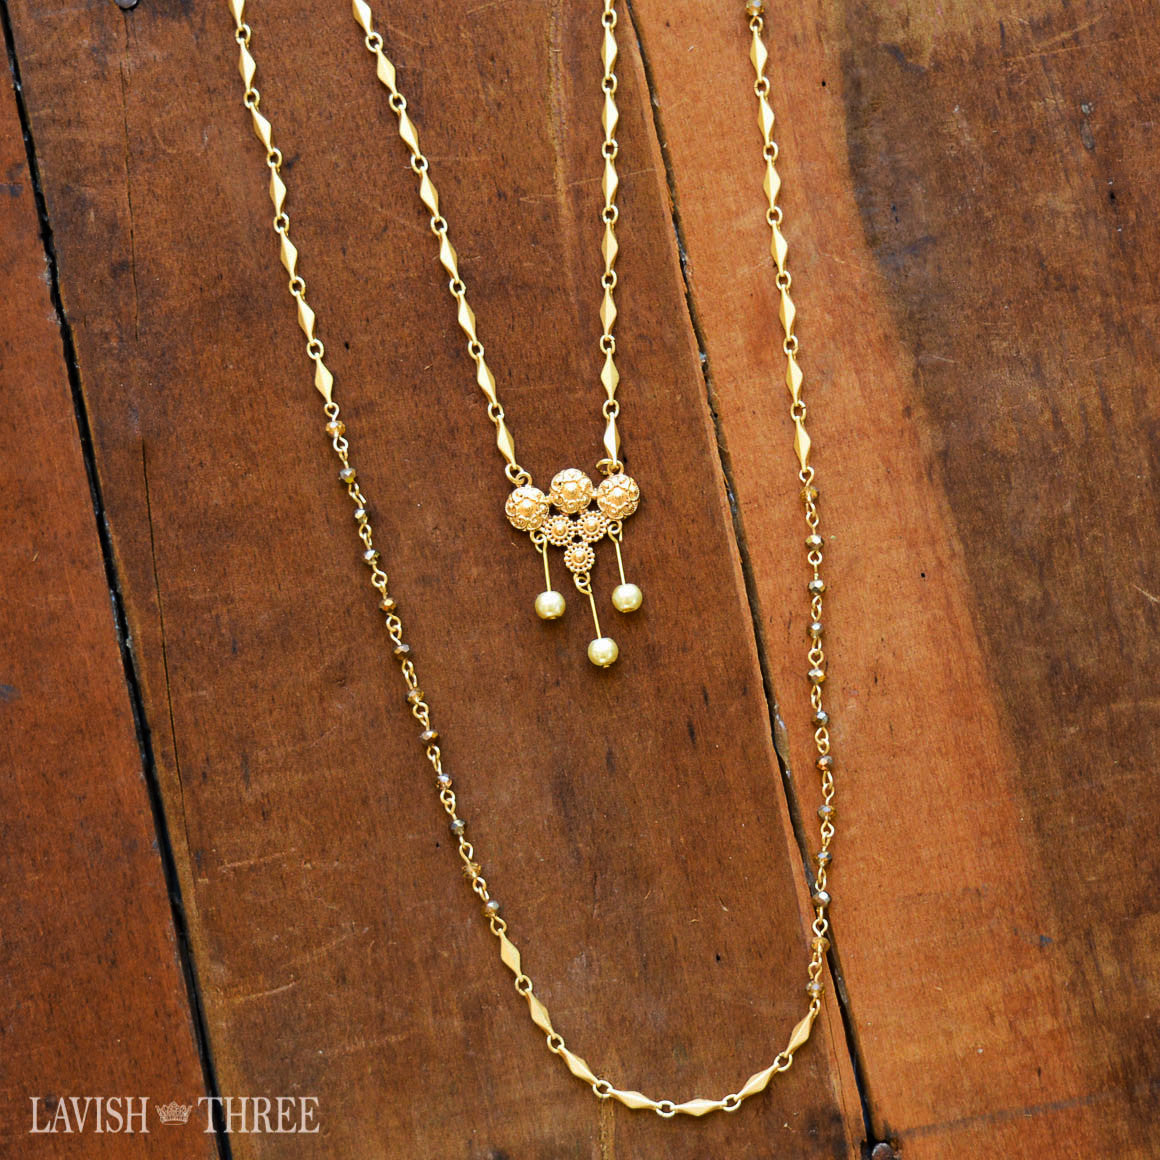 Long gold double chain necklace with pendant charm one of a kind jewelry